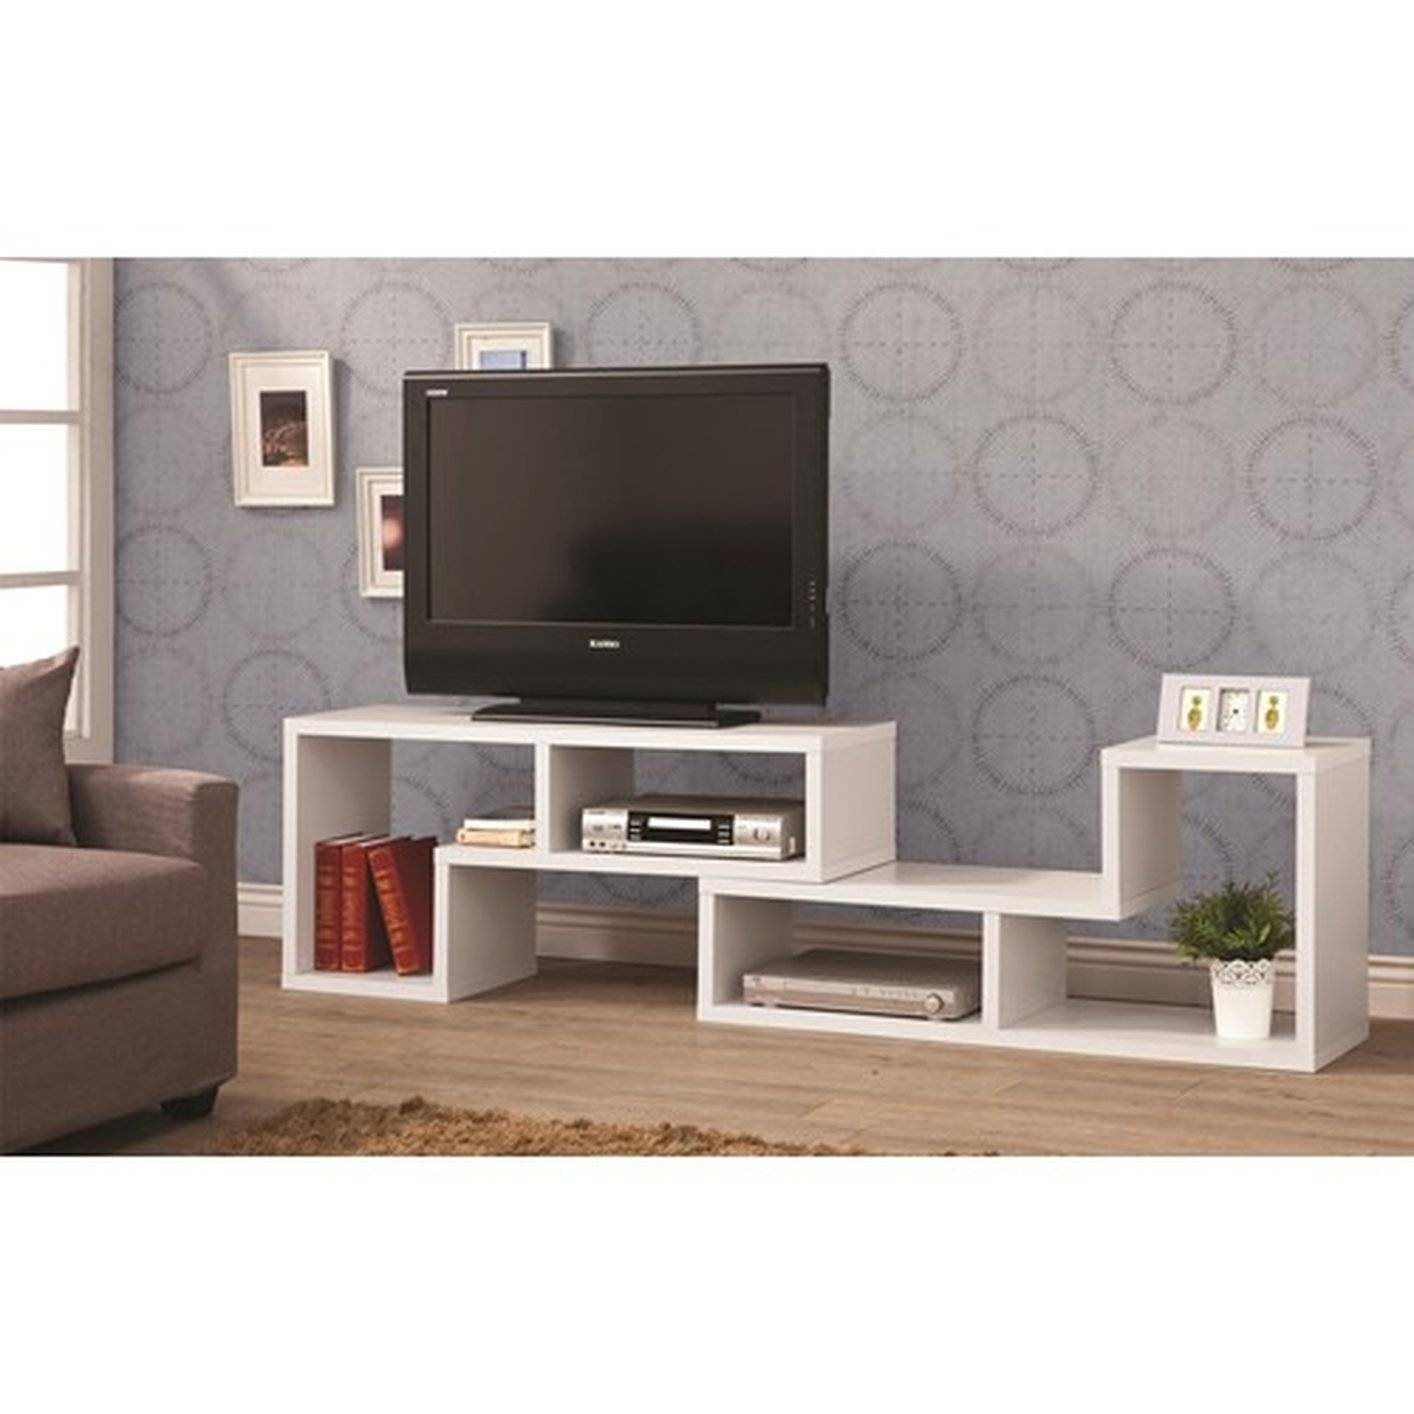 White Wood Tv Stand   Steal A Sofa Furniture Outlet Los Angeles Ca For Modern Wooden Tv Stands (Photo 8 of 15)